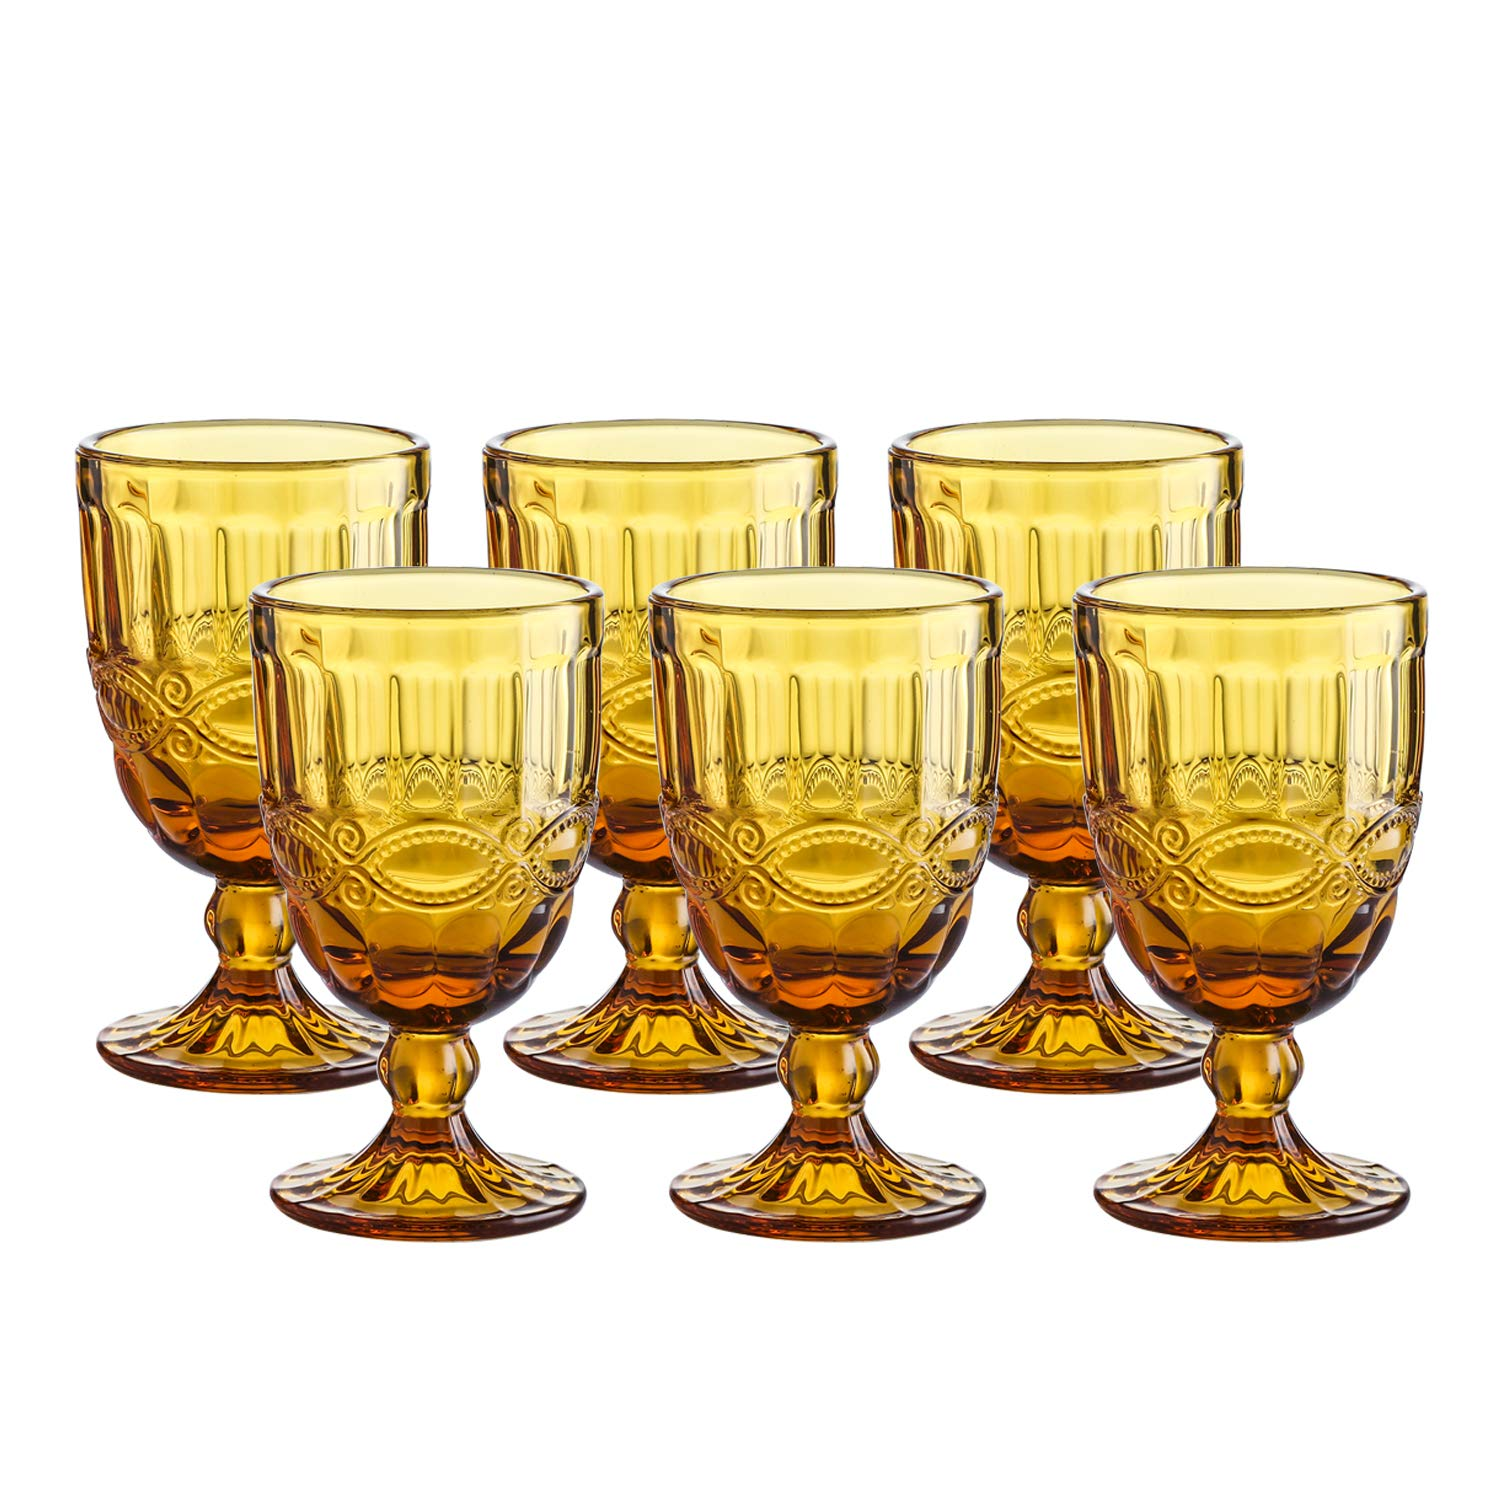 Colored Water Goblet - 8.5 Ounce Vintage-inspired Pattern Glass Wedding Goblets set of 6-Solid Glass Color(Amber)